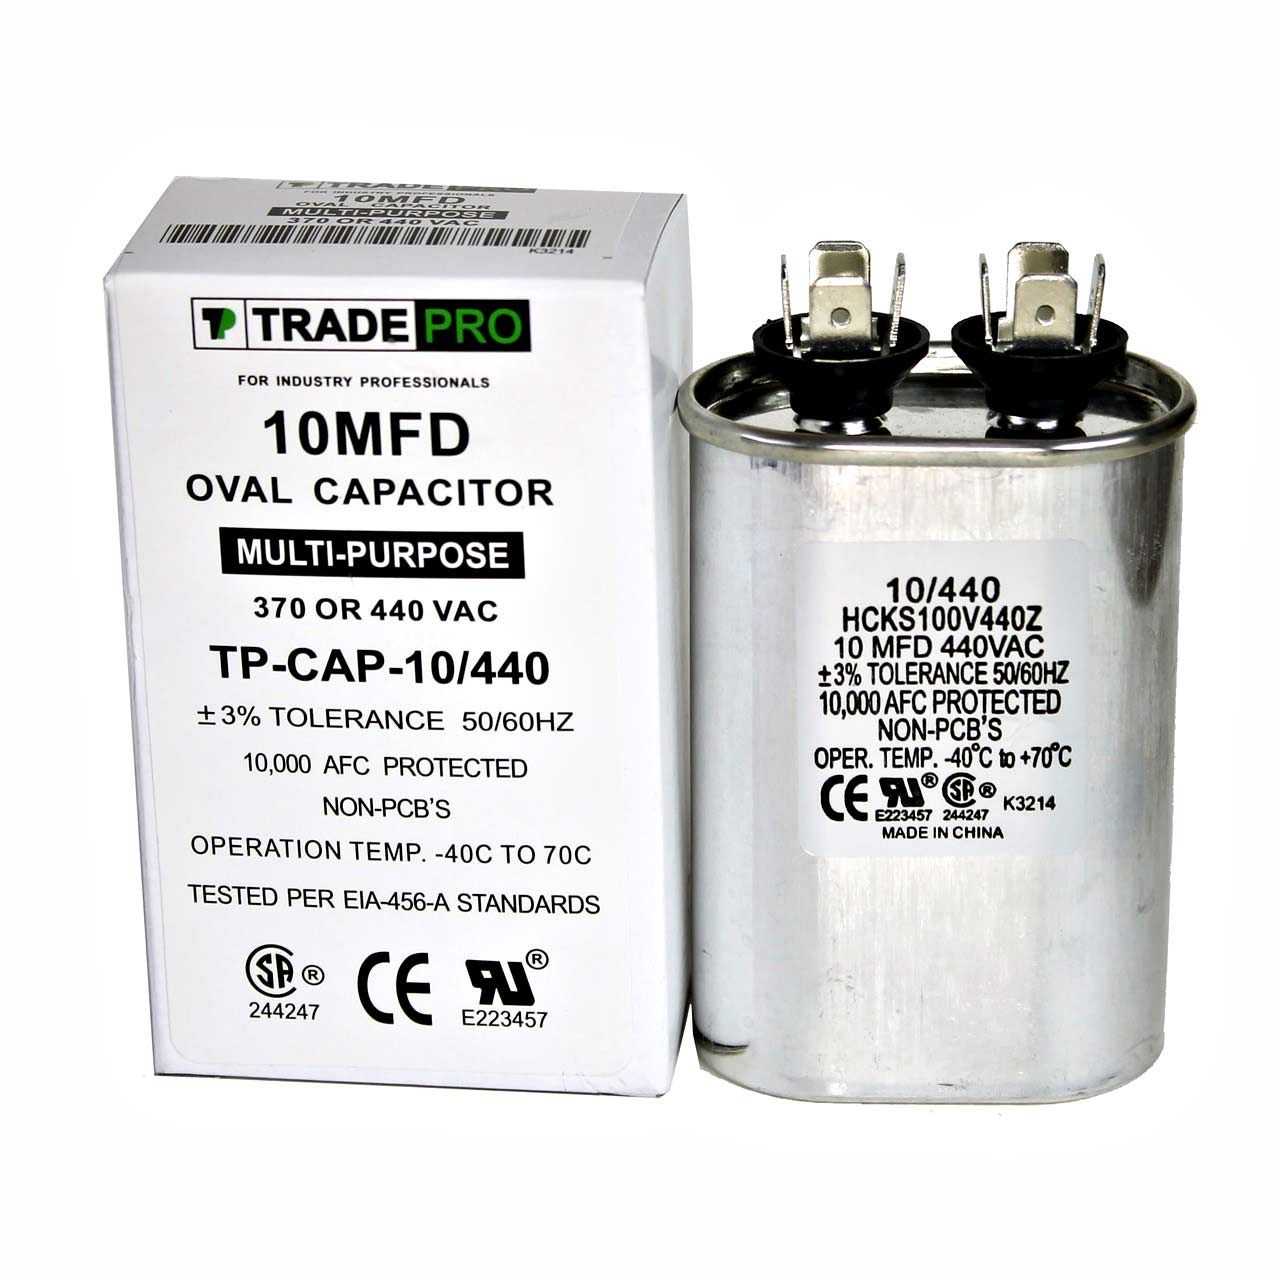 10 Mfd 370 Or 440 Oval Run Capacitor Tp Cap 10 440 Hcks100v440z Capacitor Heat Pump Air Conditioner 10 Things